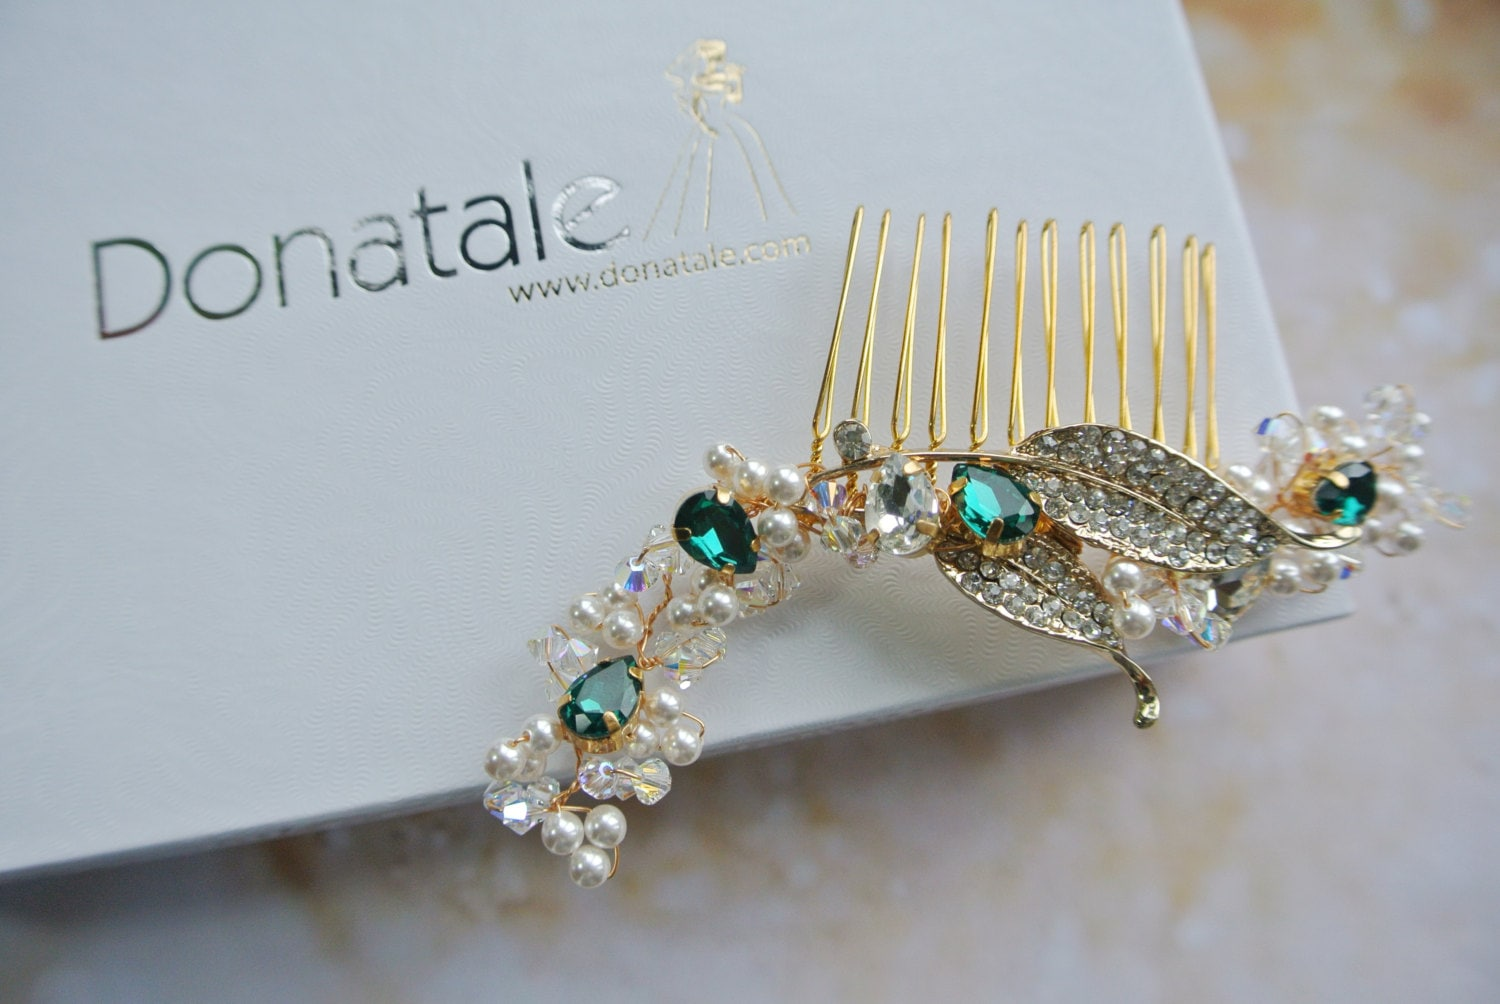 Emerald Green Bridal Hair Accessories - Like this item